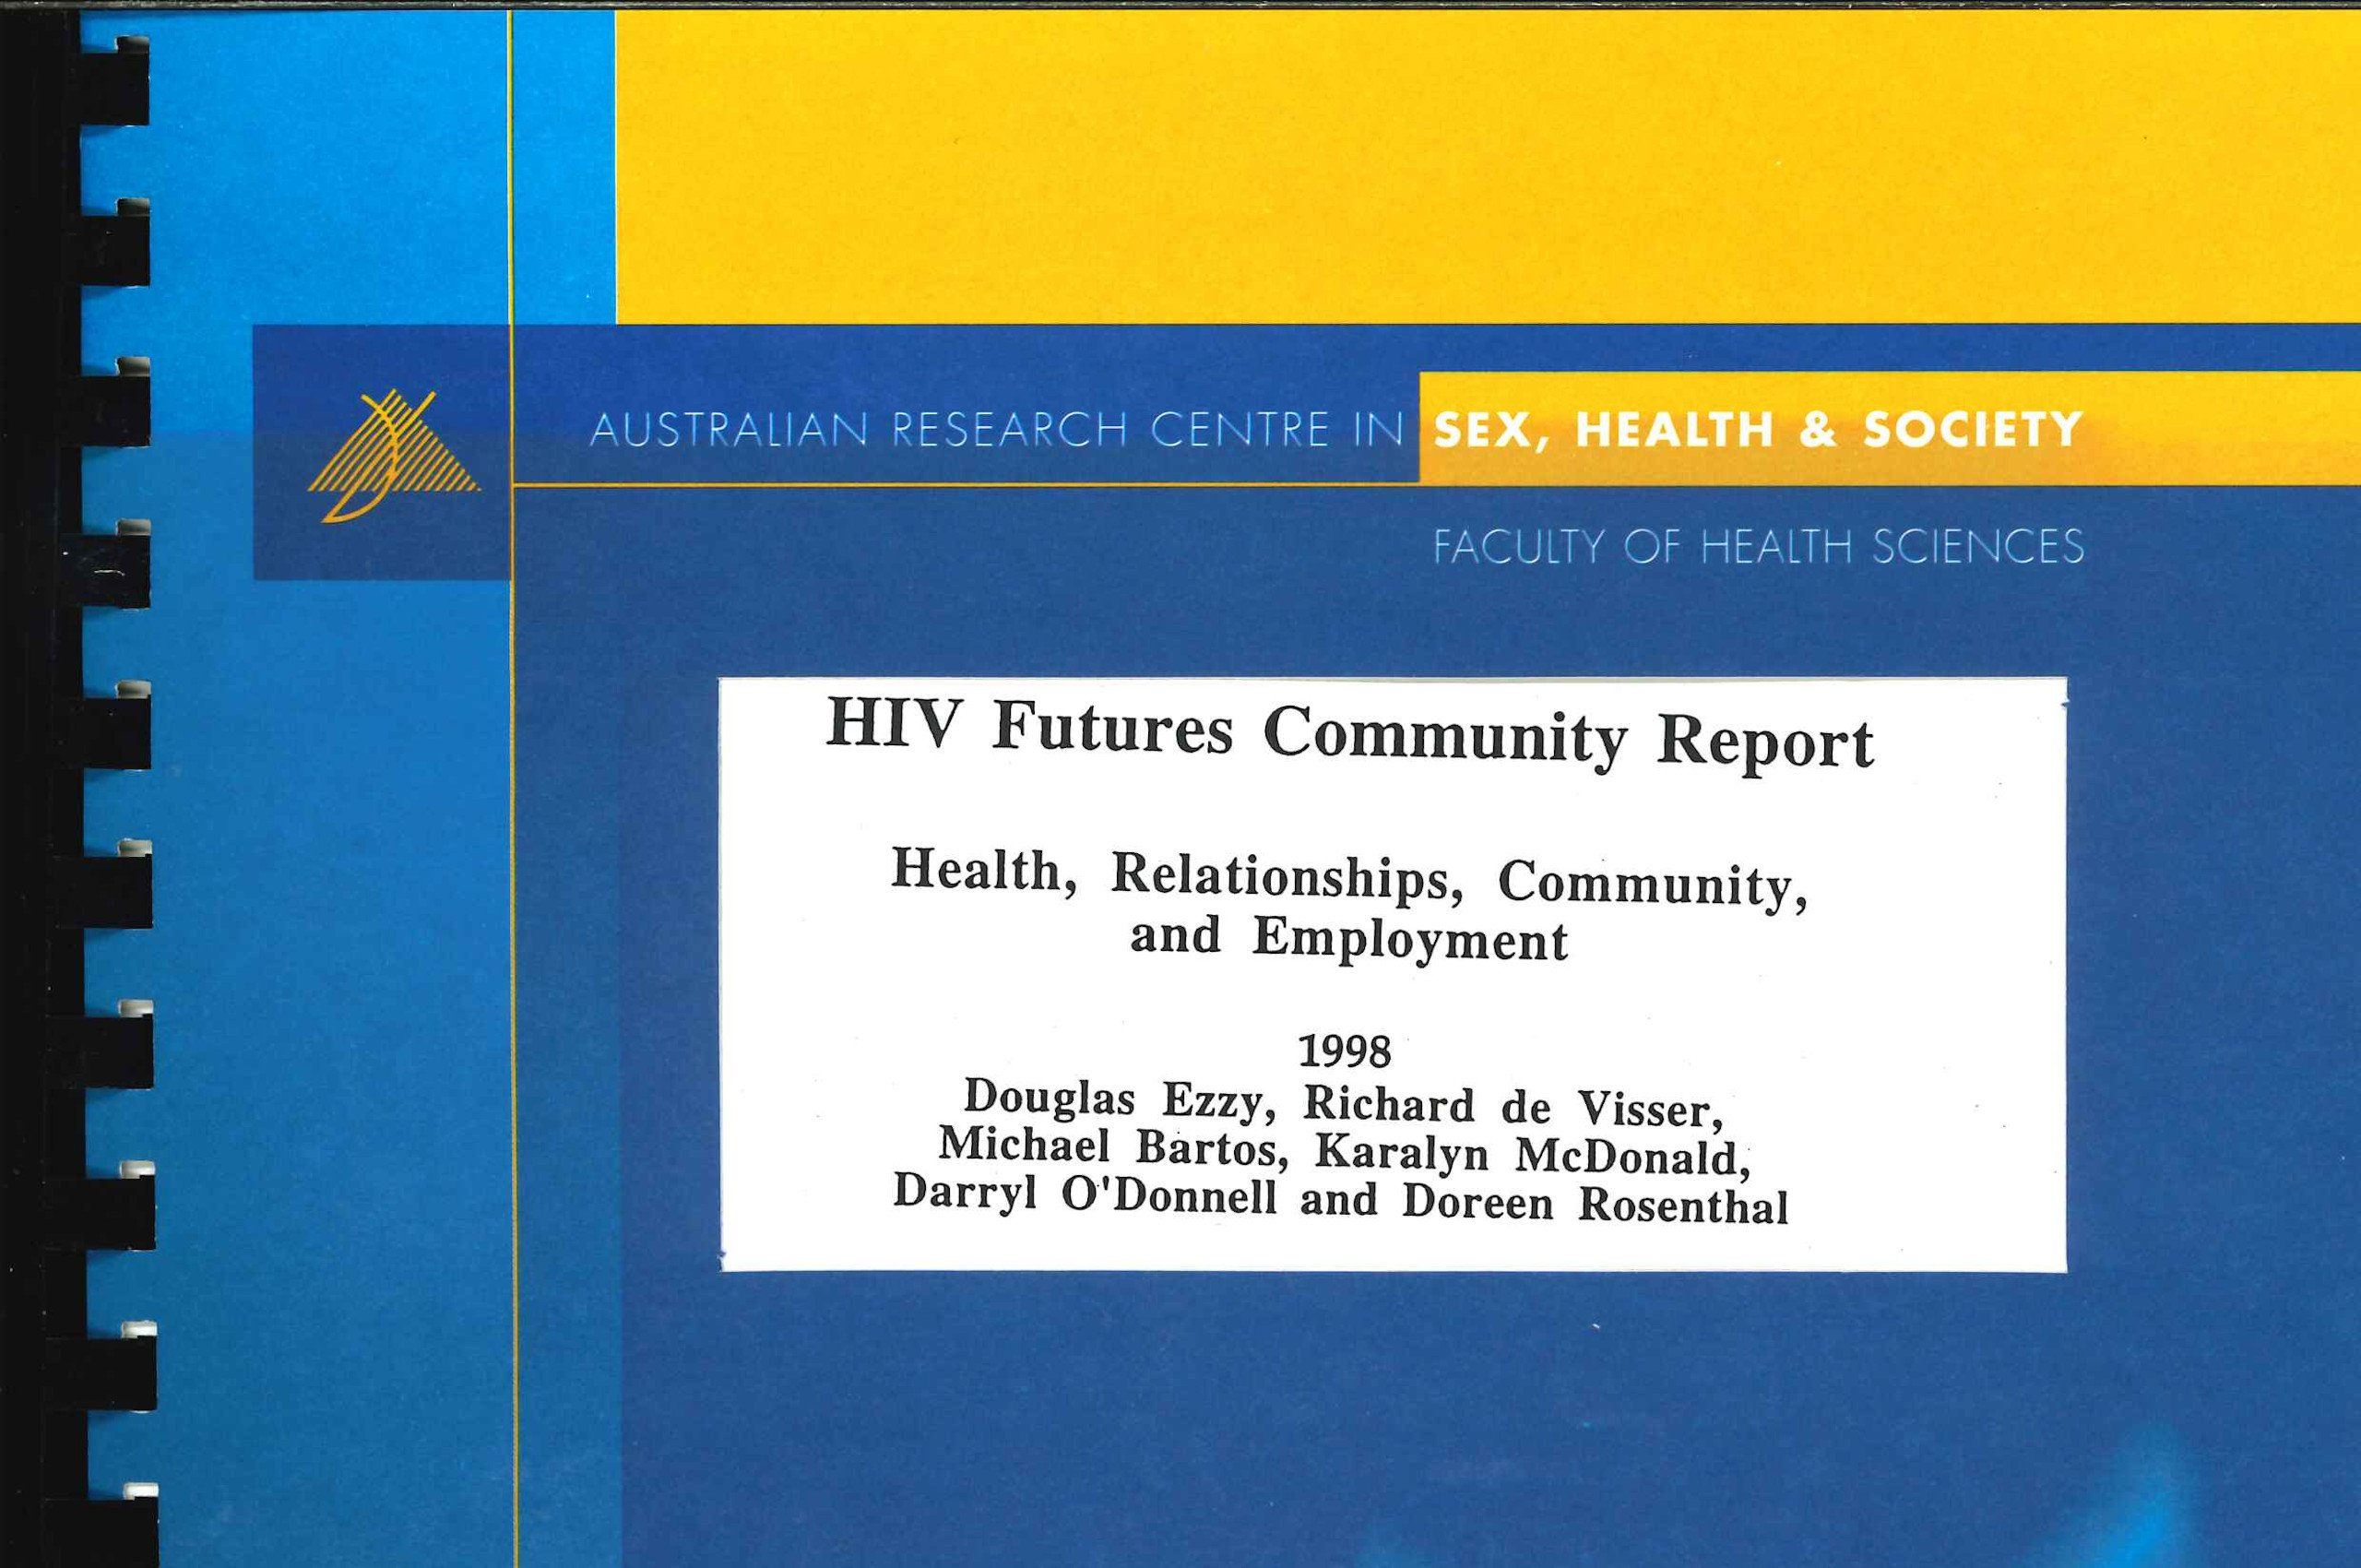 HIV Futures 1 cover, with text 'HIV Futures Community Report', author names and date visible through cutout window in blue and yellow card front cover and spiral binding visible at left.